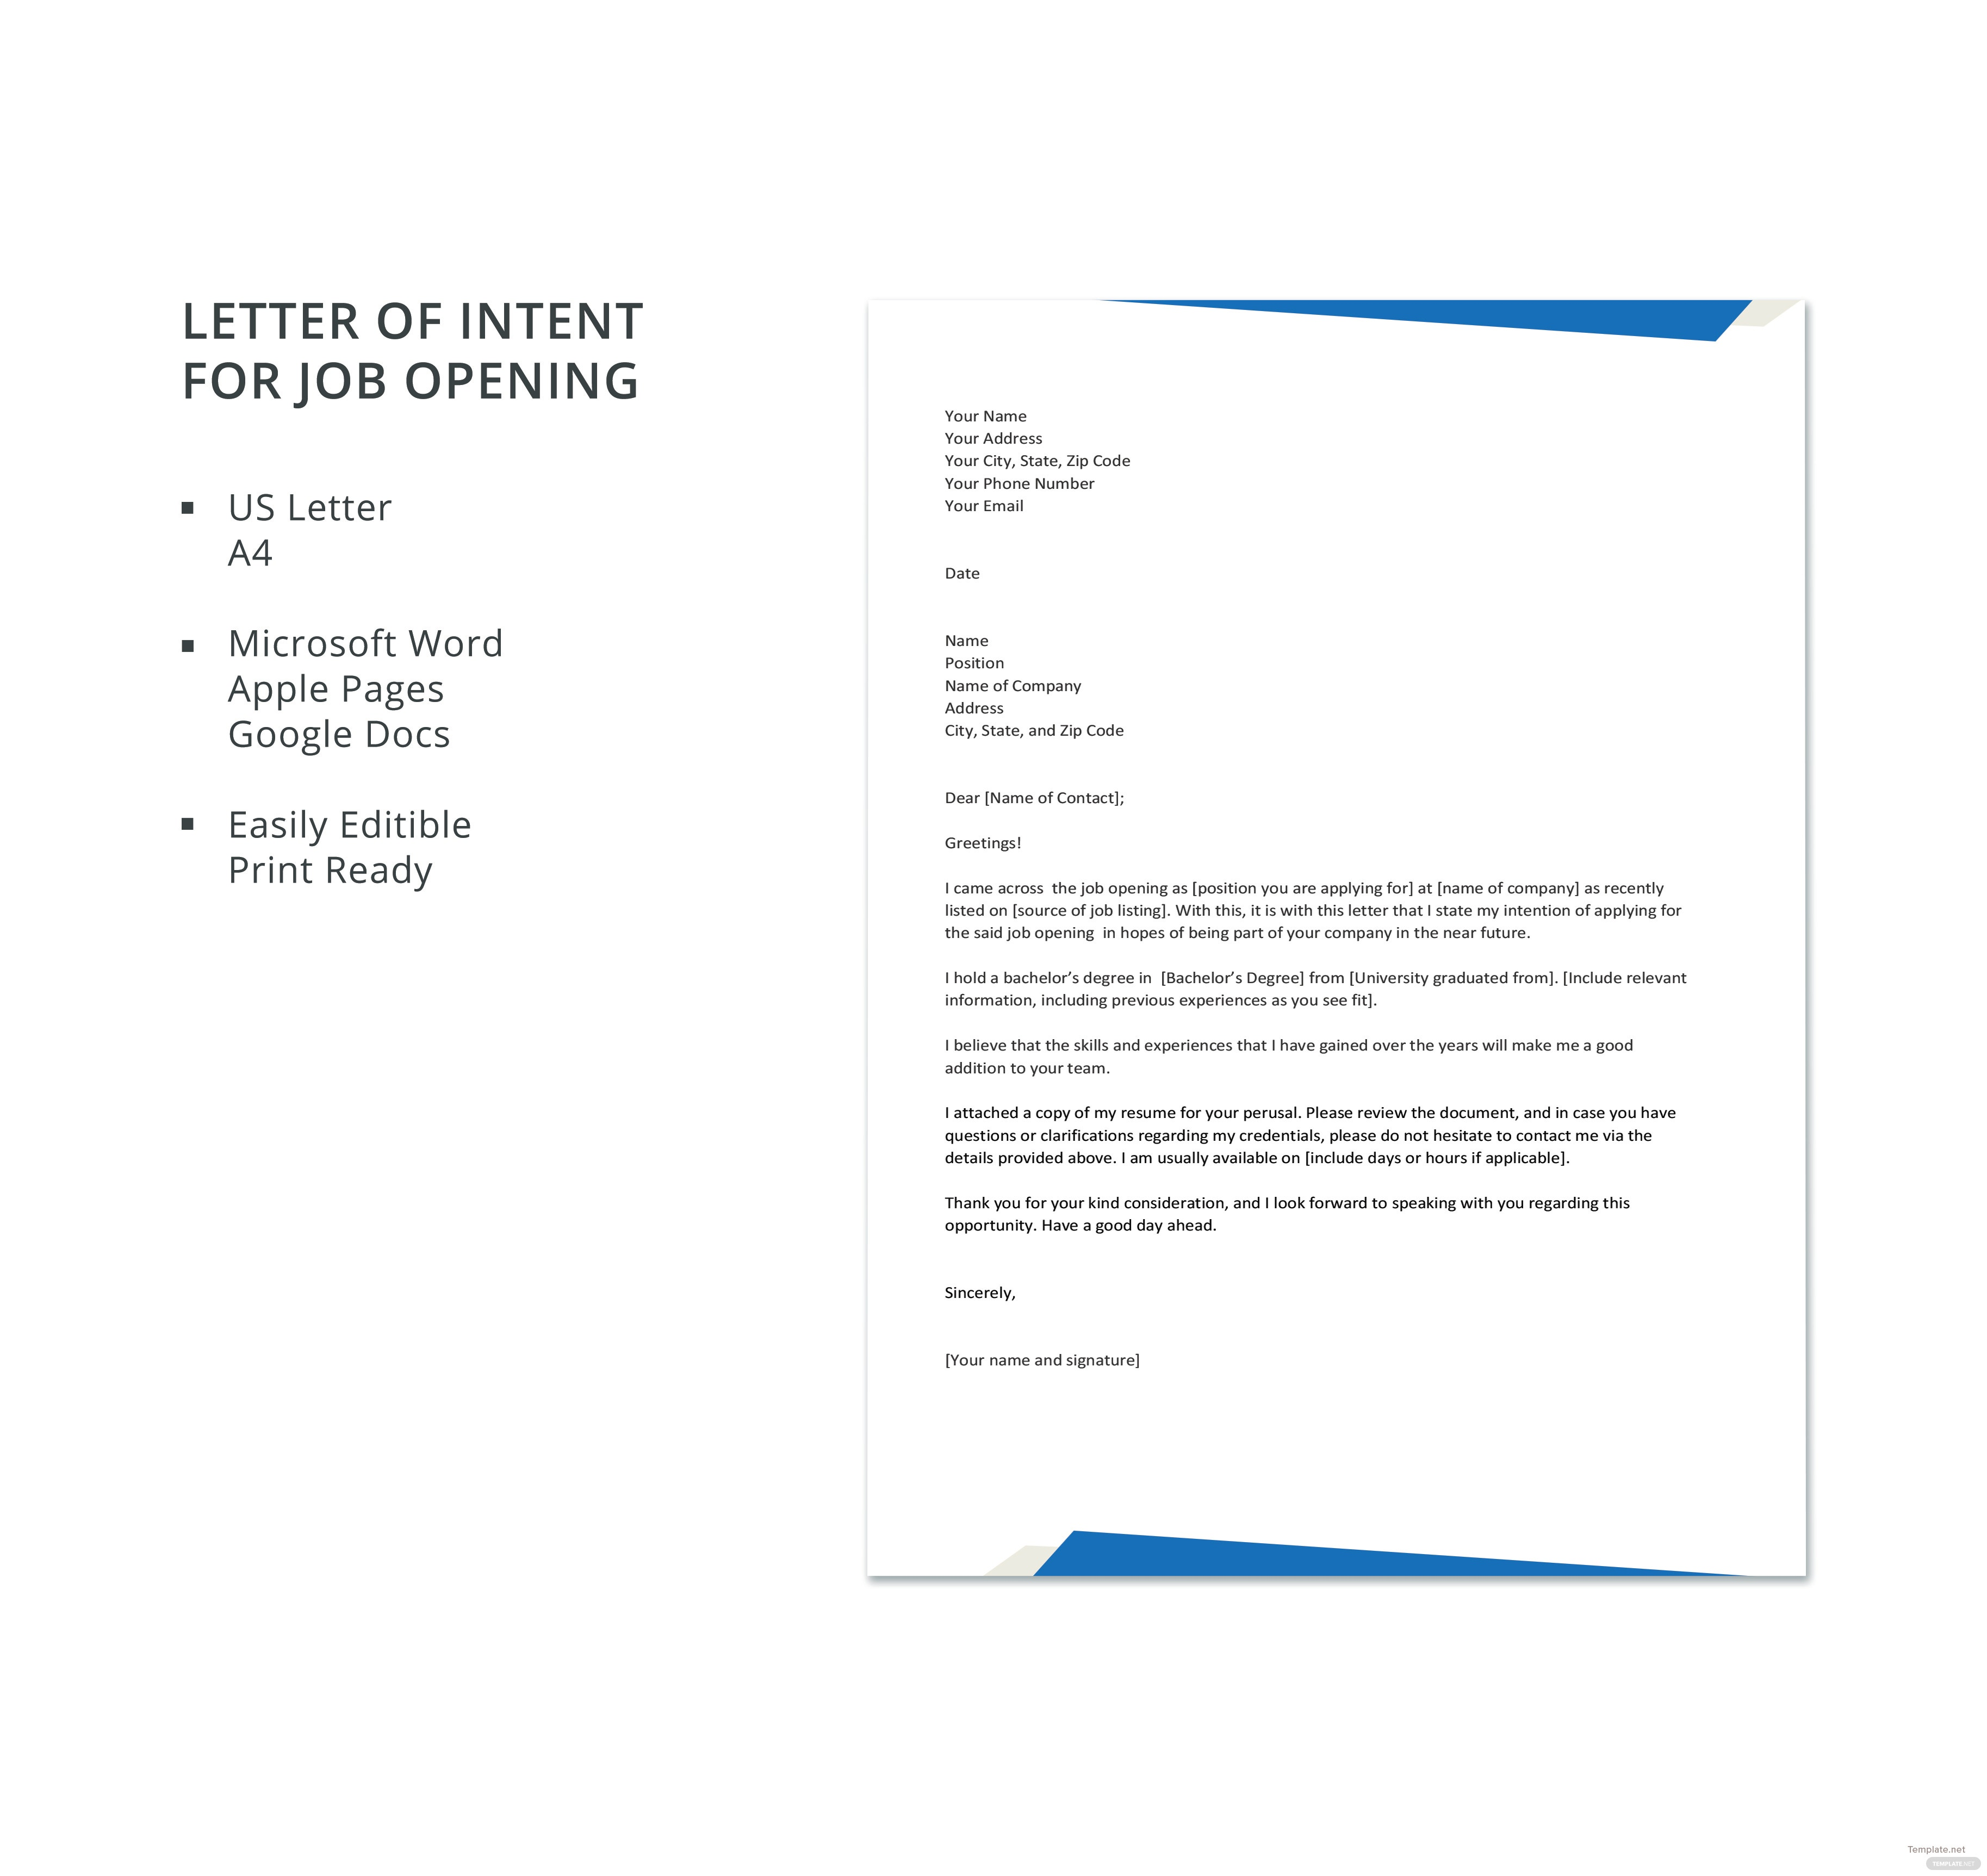 Letter Of Intent For Job Opening Template In Microsoft